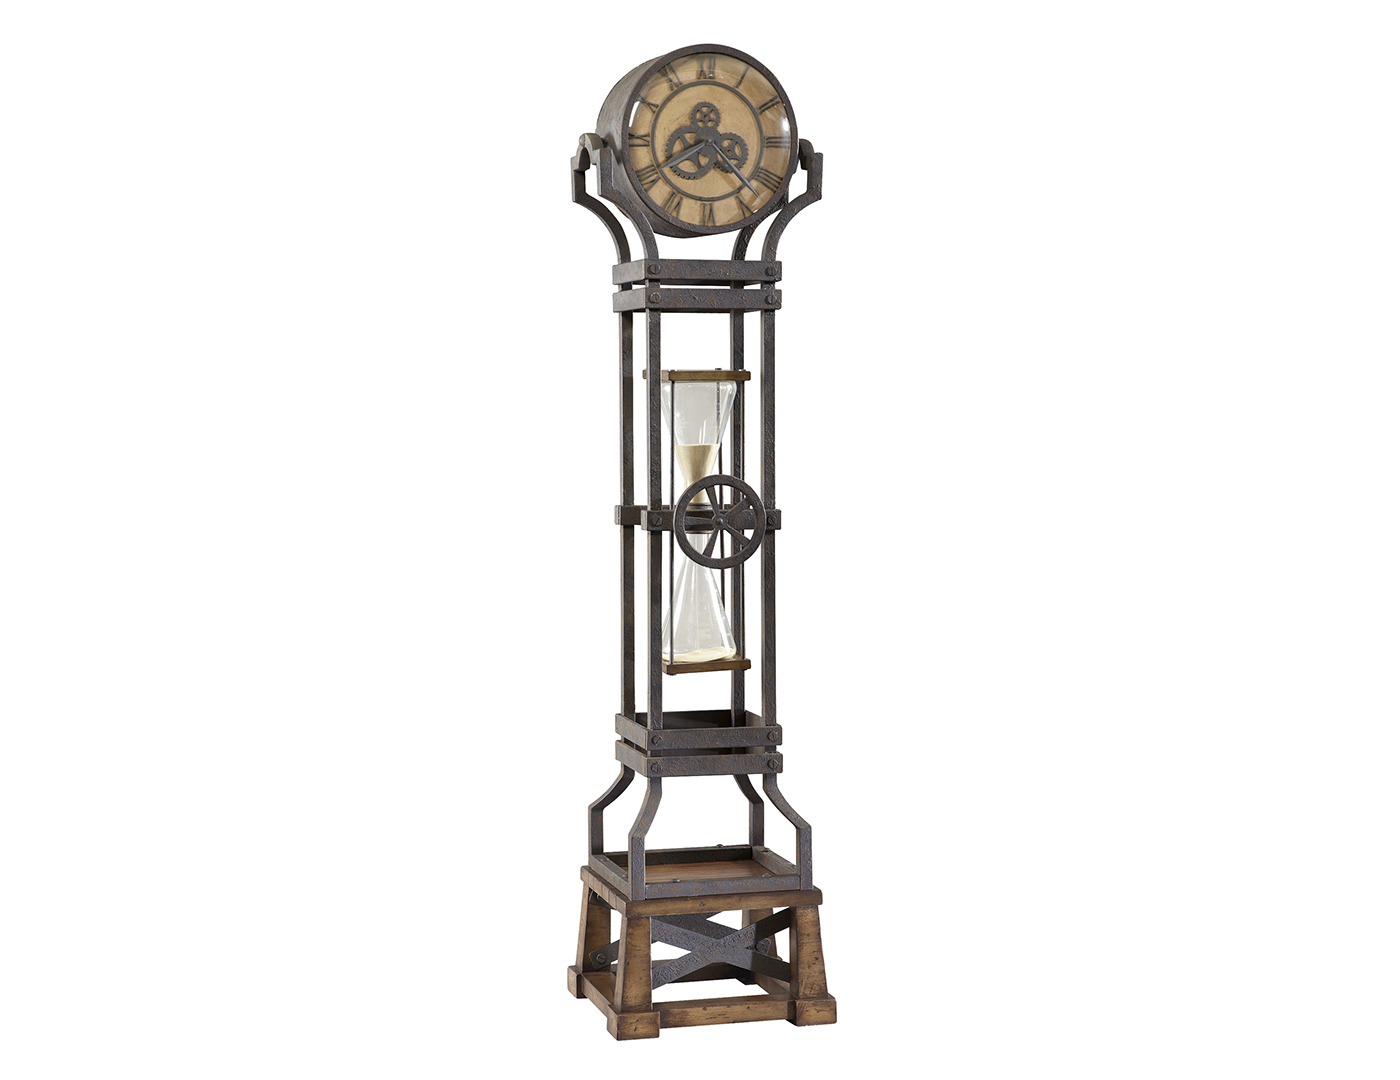 Aged Iron Hourglass Floor Clock